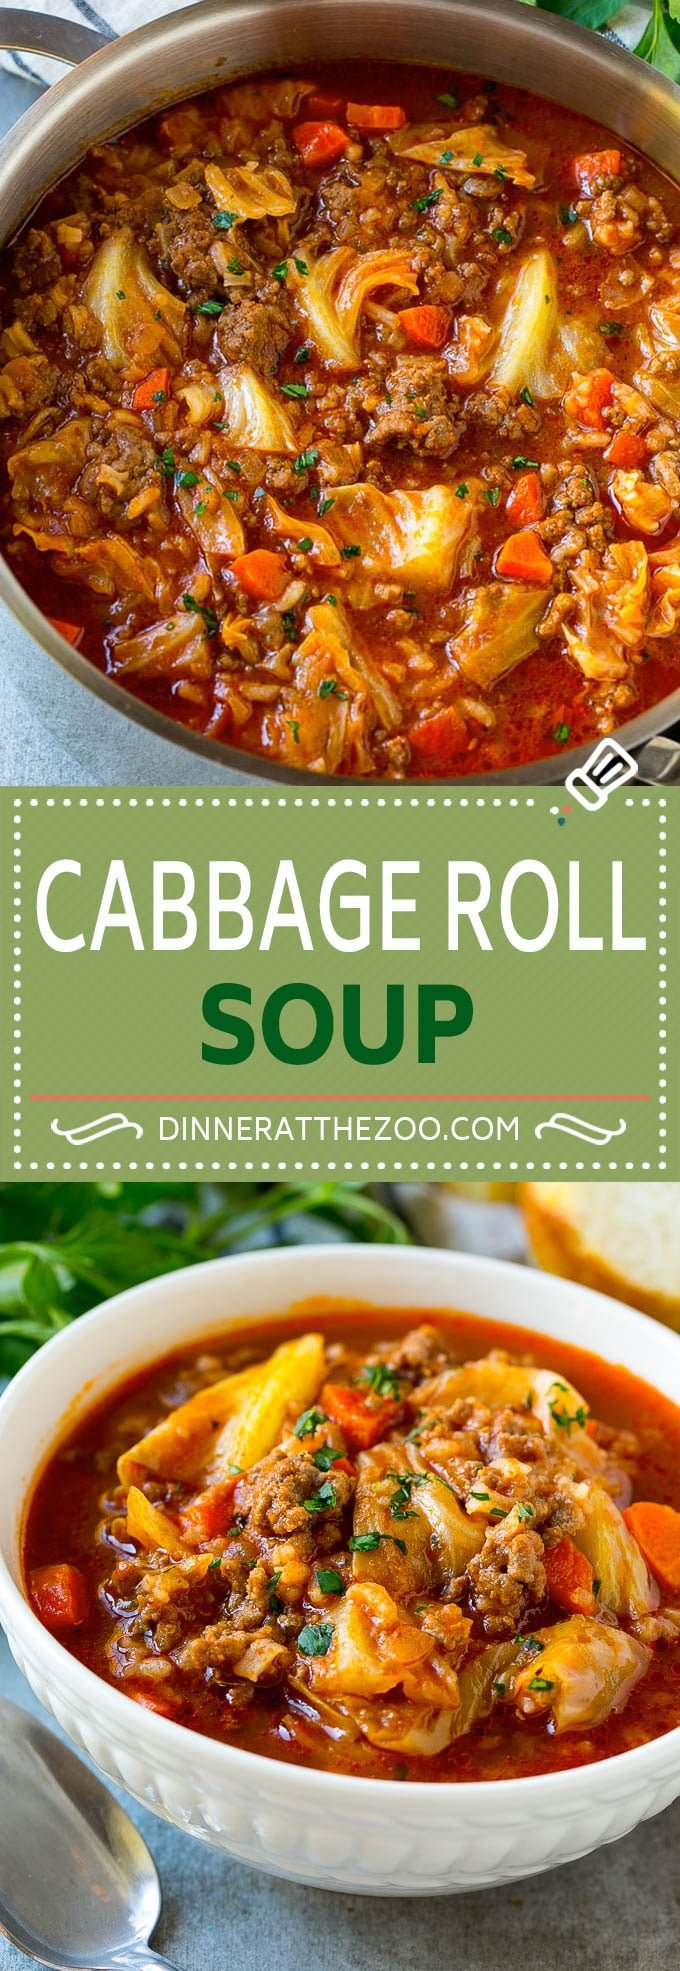 Cabbage Roll Soup Recipe | Unstuffed Cabbage Soup | Cabbage Soup Recipe | Beef and Cabbage Soup #cabbage #soup #cabbagesoup #beef #dinneratthezoo